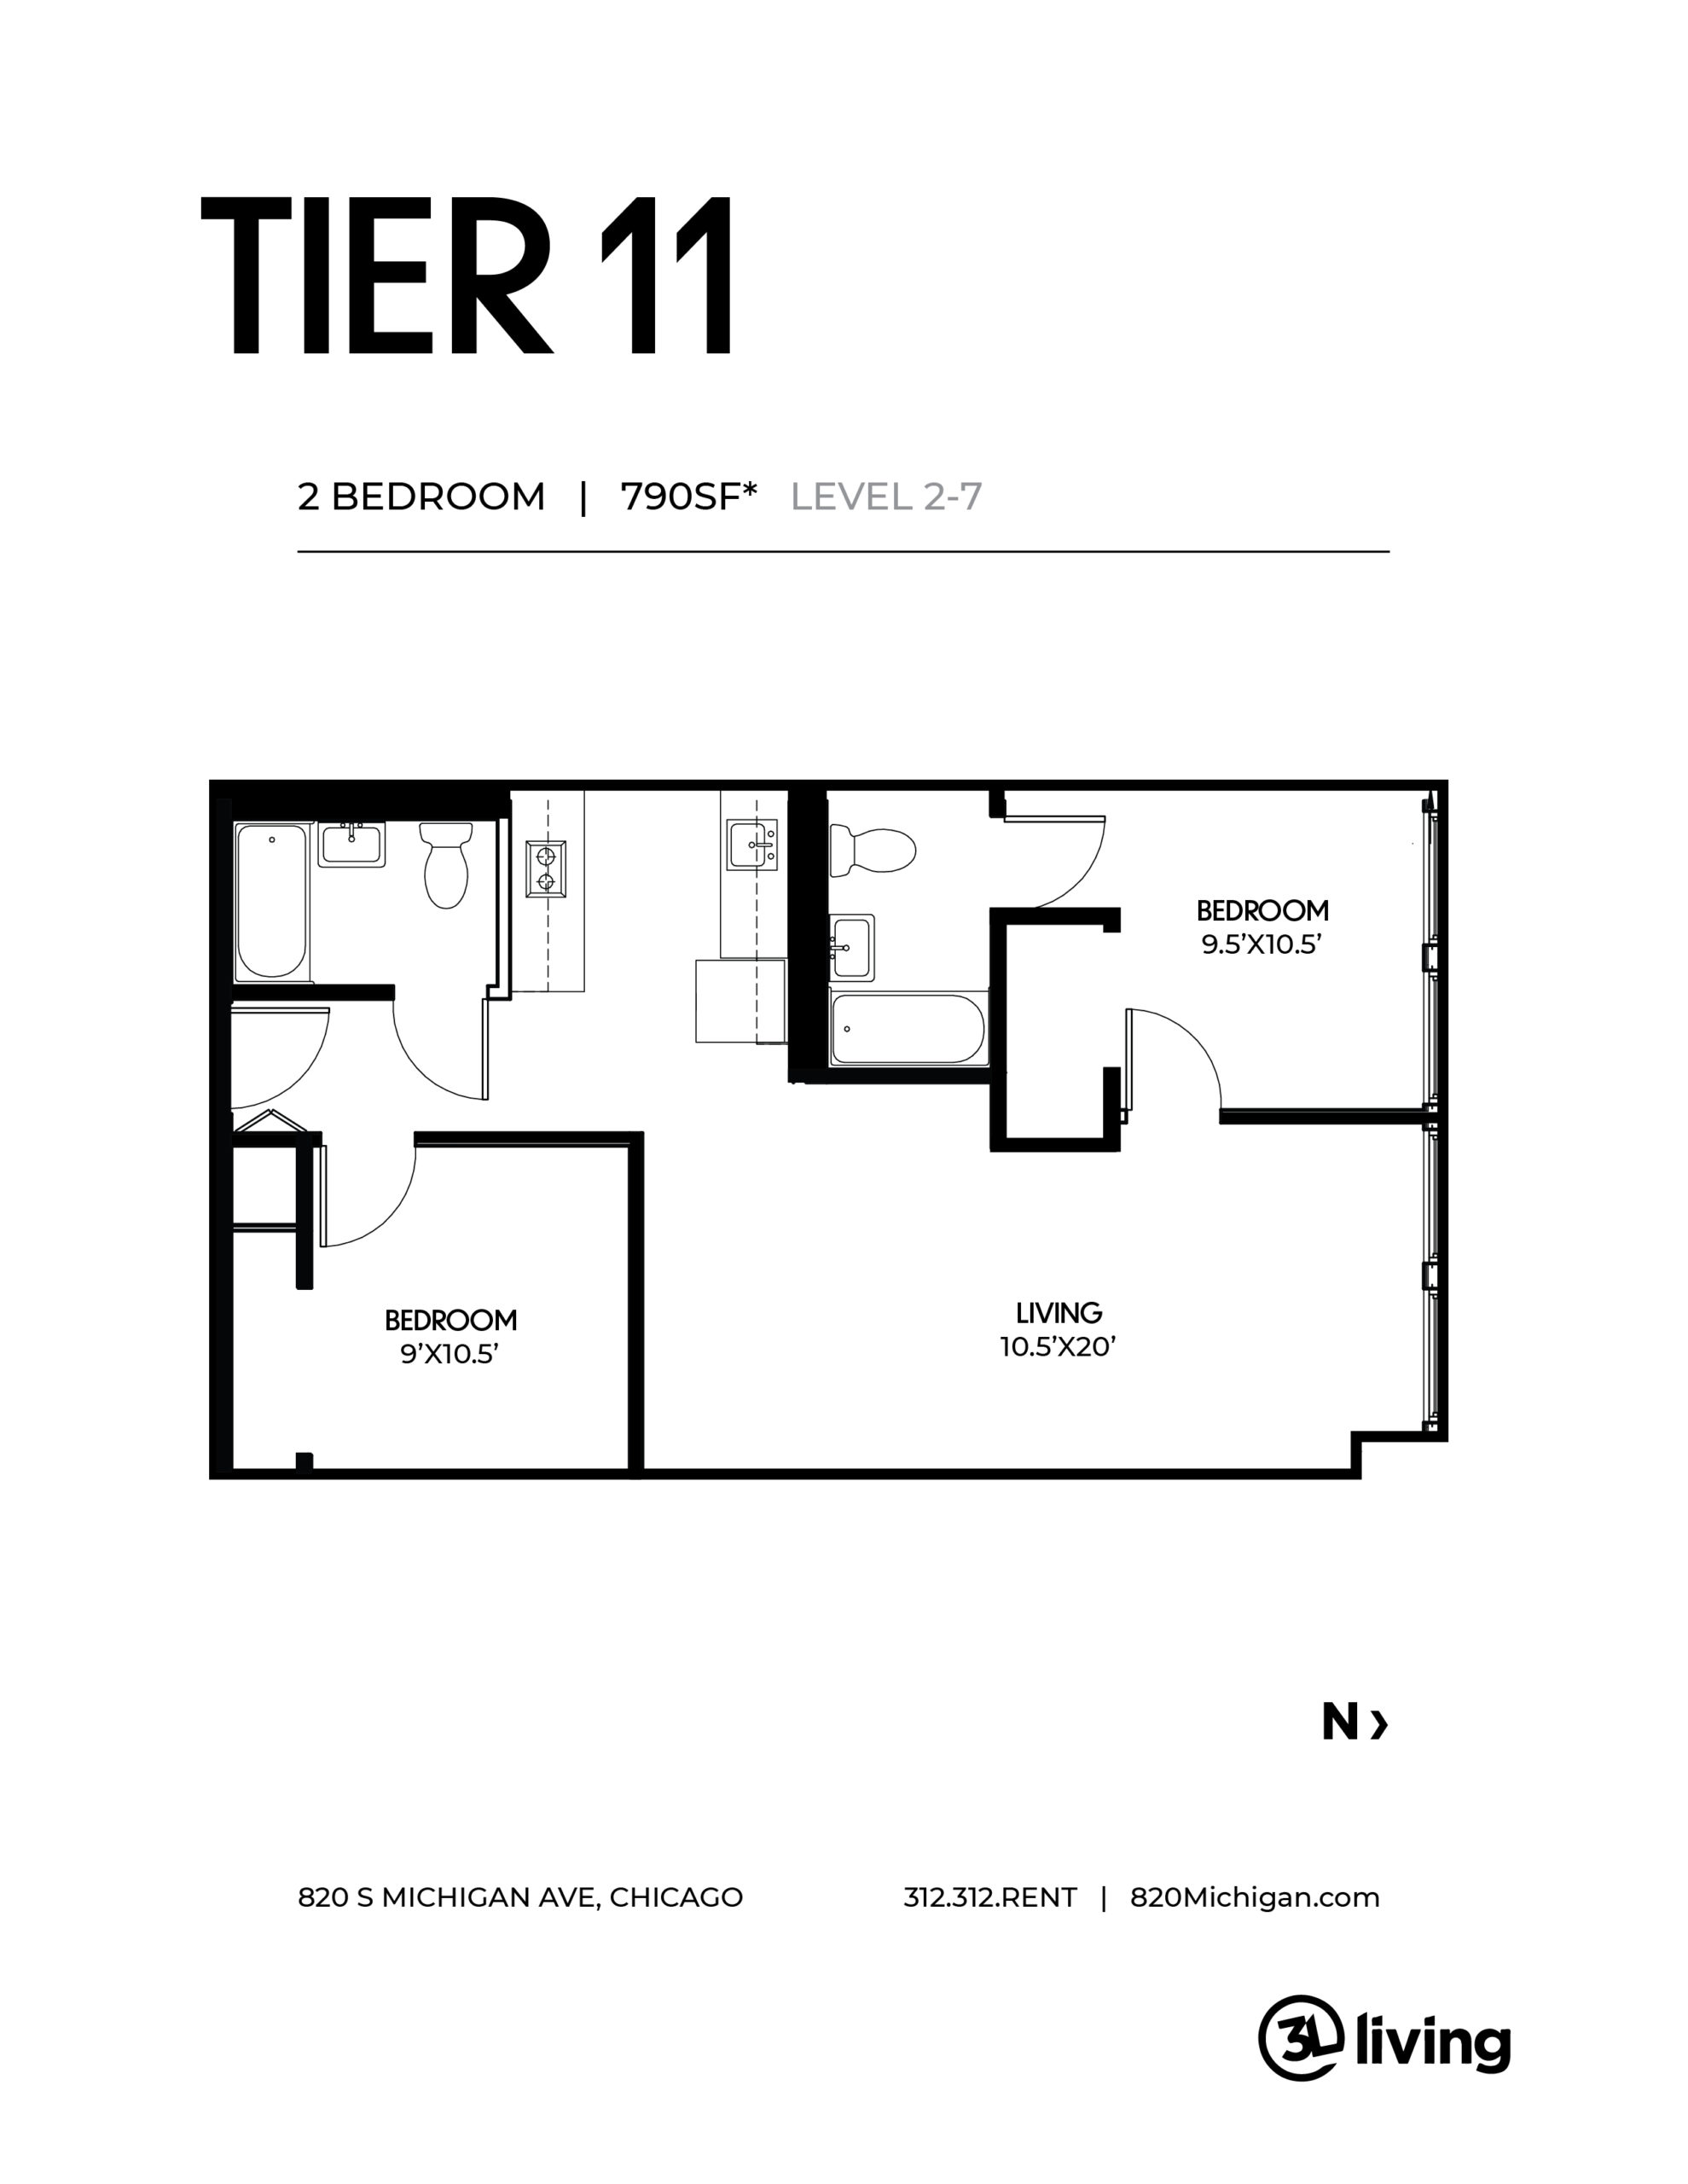 820SM-Floorplans-Measurements-R3-11